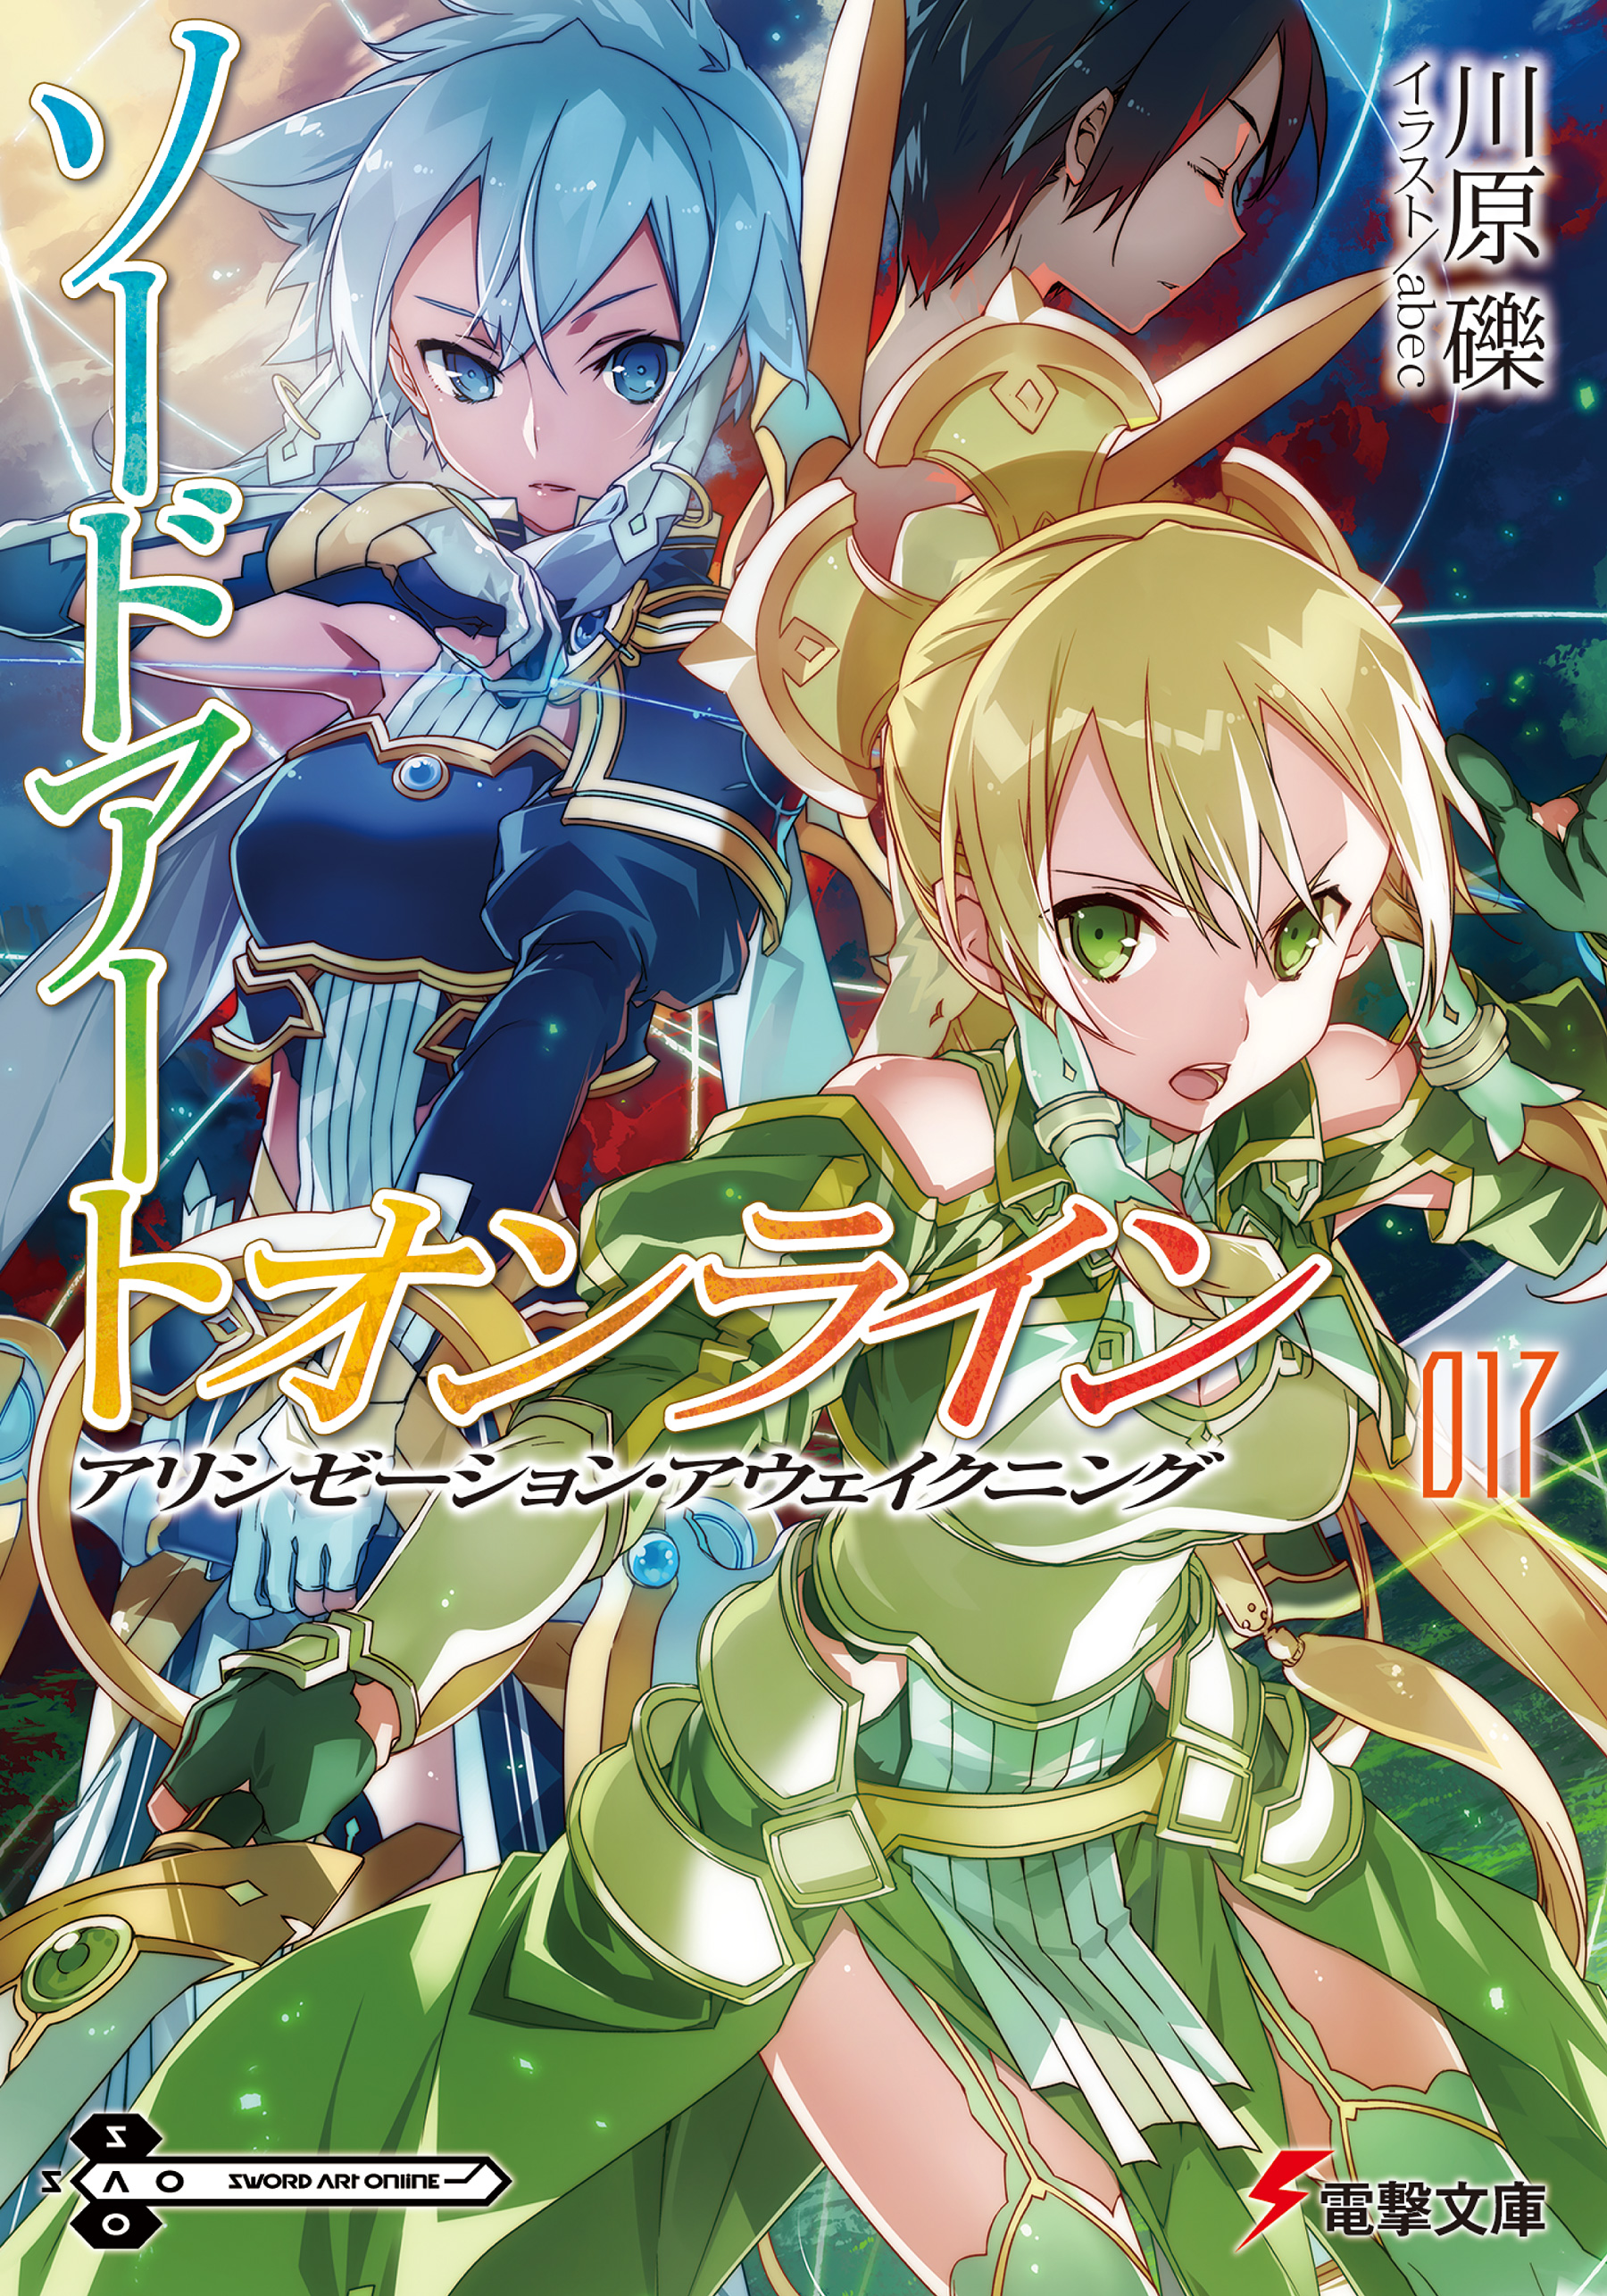 Sword Art Online Light Novel Volume 17 | Sword Art Online